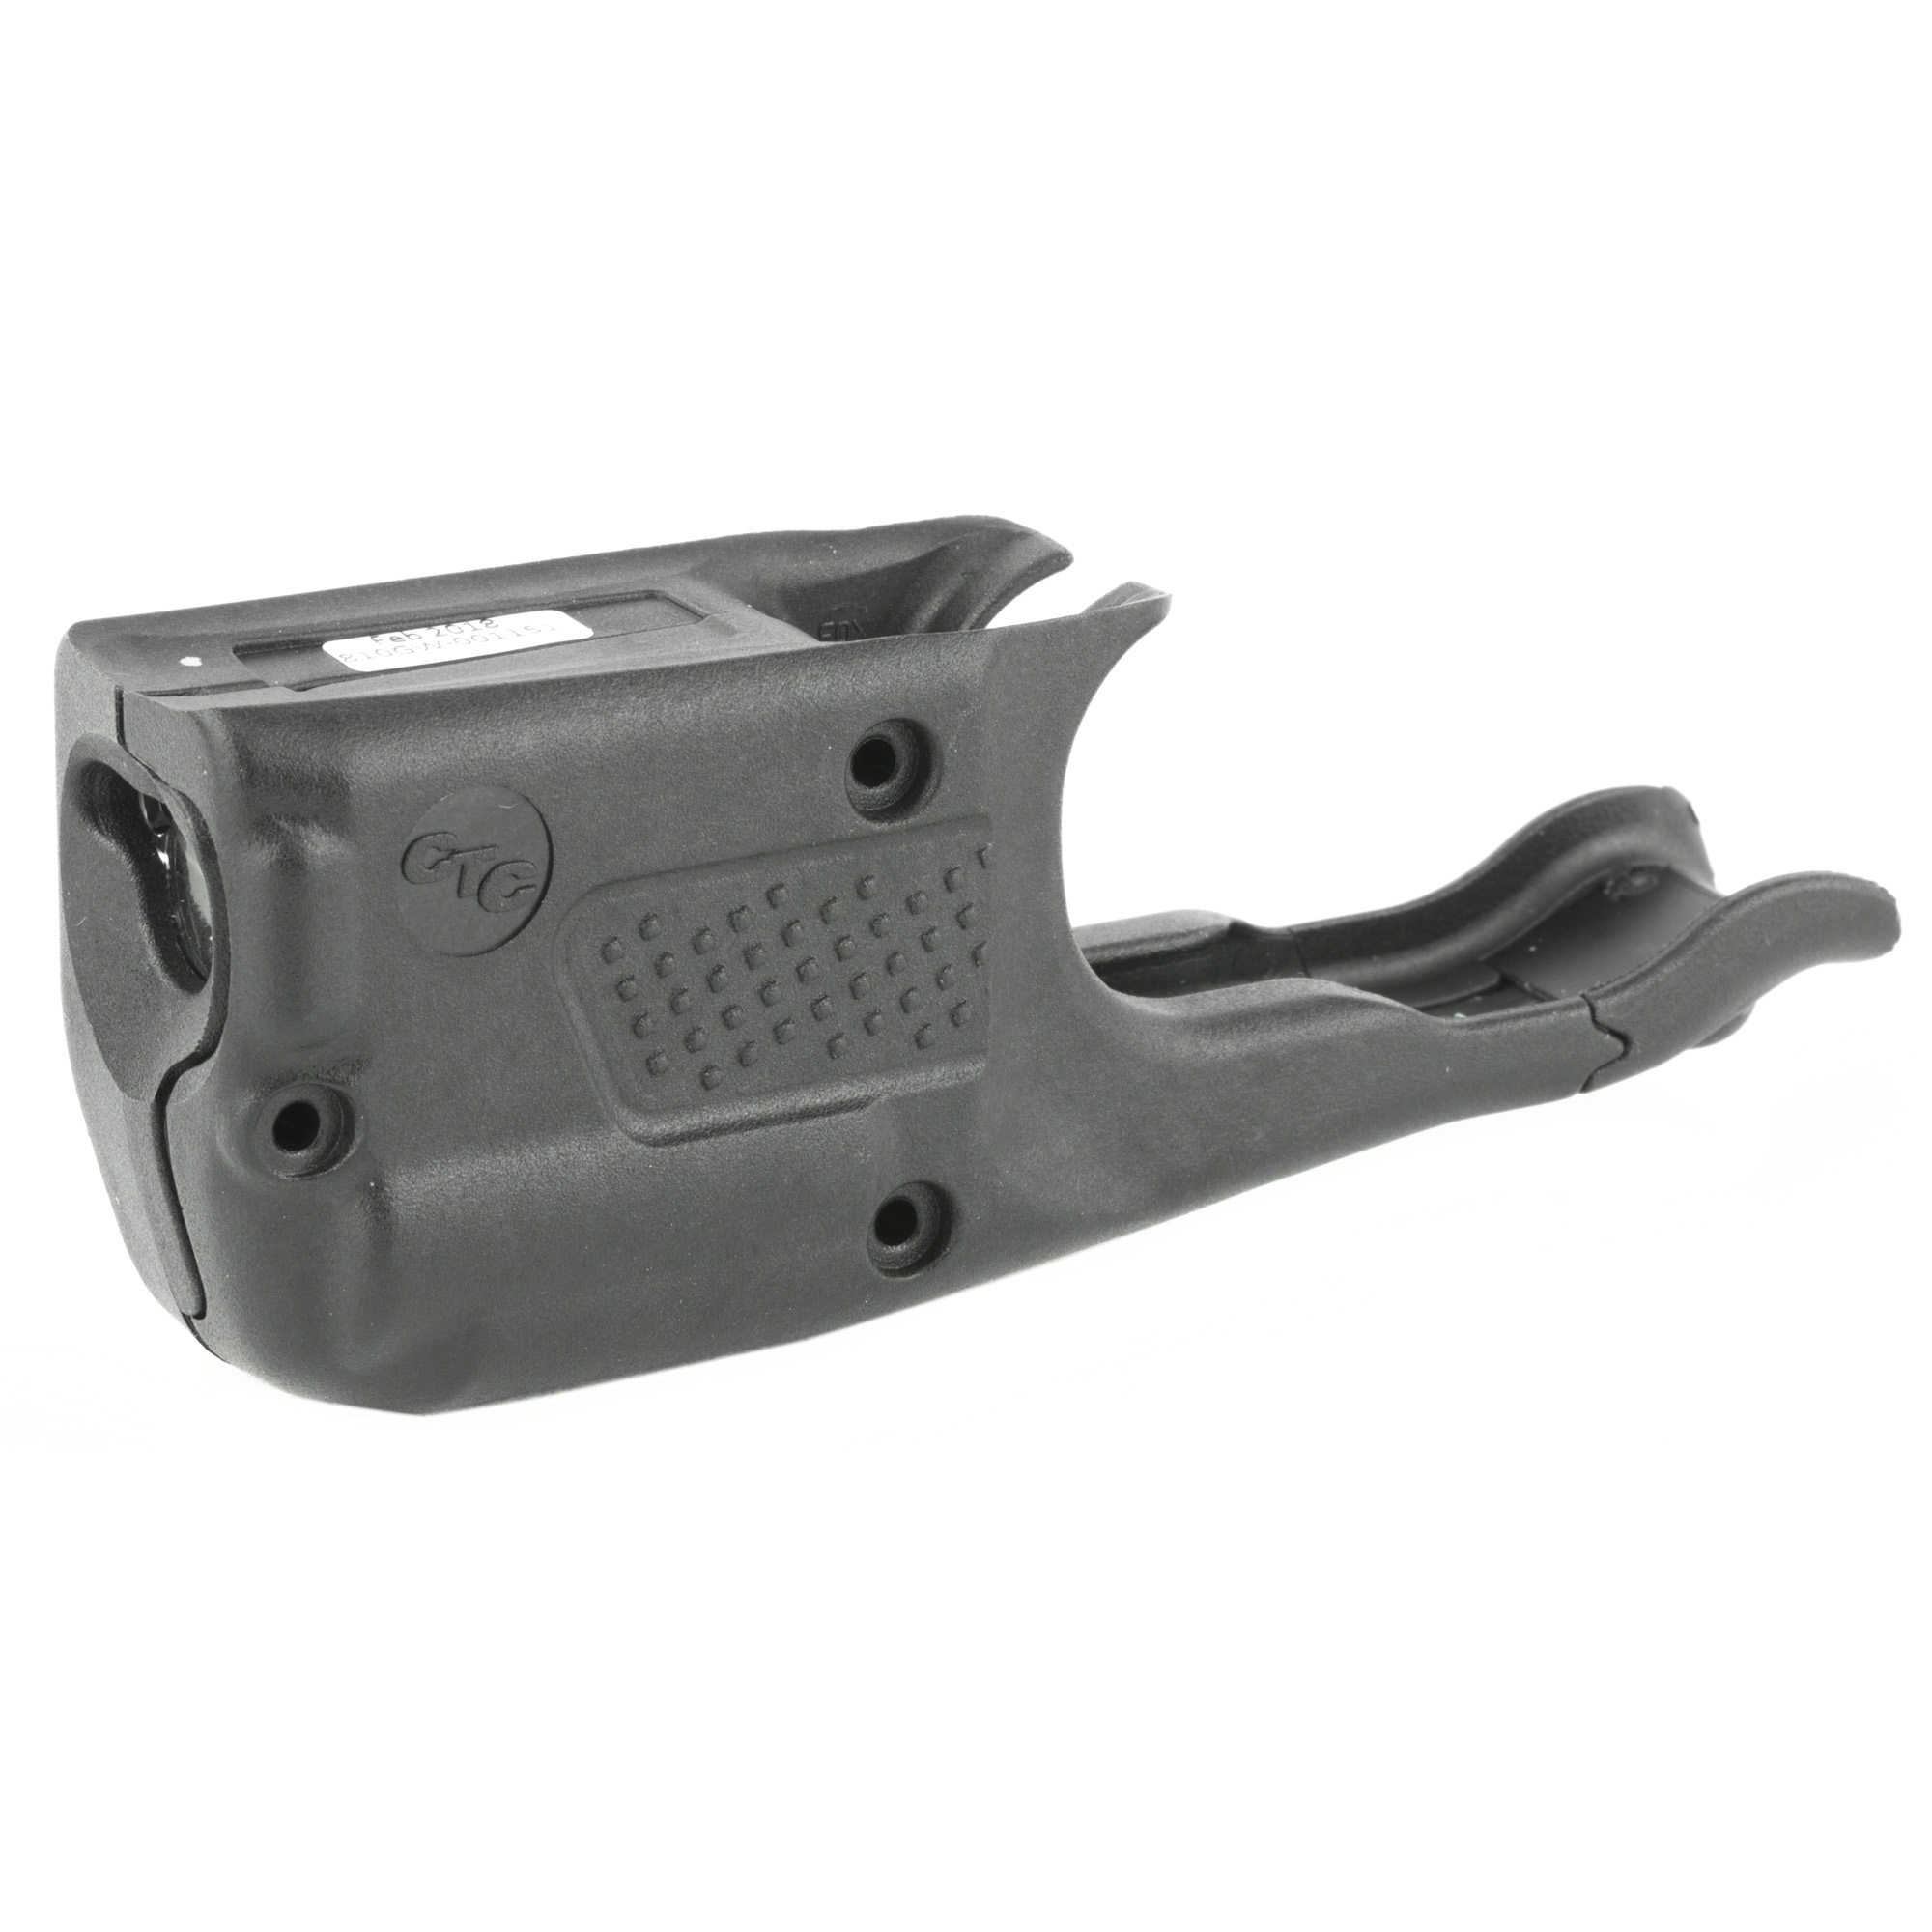 """LL-810G Green Laserguard(R) Pro(TM) for GLOCK Subcompact pistols is a powerful green laser sight and 150 Lumen LED white light in a single compact unit. This illumination and targeting product is activated with Crimson Trace's famed Instinctive Activation(TM)"""" which activates the unit via a front activation button when the pistol is held in a normal firing grip. The LL-810 features four modes of operation (see below)"""" a Master On/Off Switch"""" is completely user-installed in moments with no modifications to the gun frame and the laser is user-adjustable for windage and elevation. Offers 2 hours of battery life with a single CR2 Lithium battery. This model will fit the following GLOCK pistols: 3rd Generation 26"""" 27"""" 33"""" 36"""" Gen4 26"""" 27"""" 33"""" and Gen5 26"""